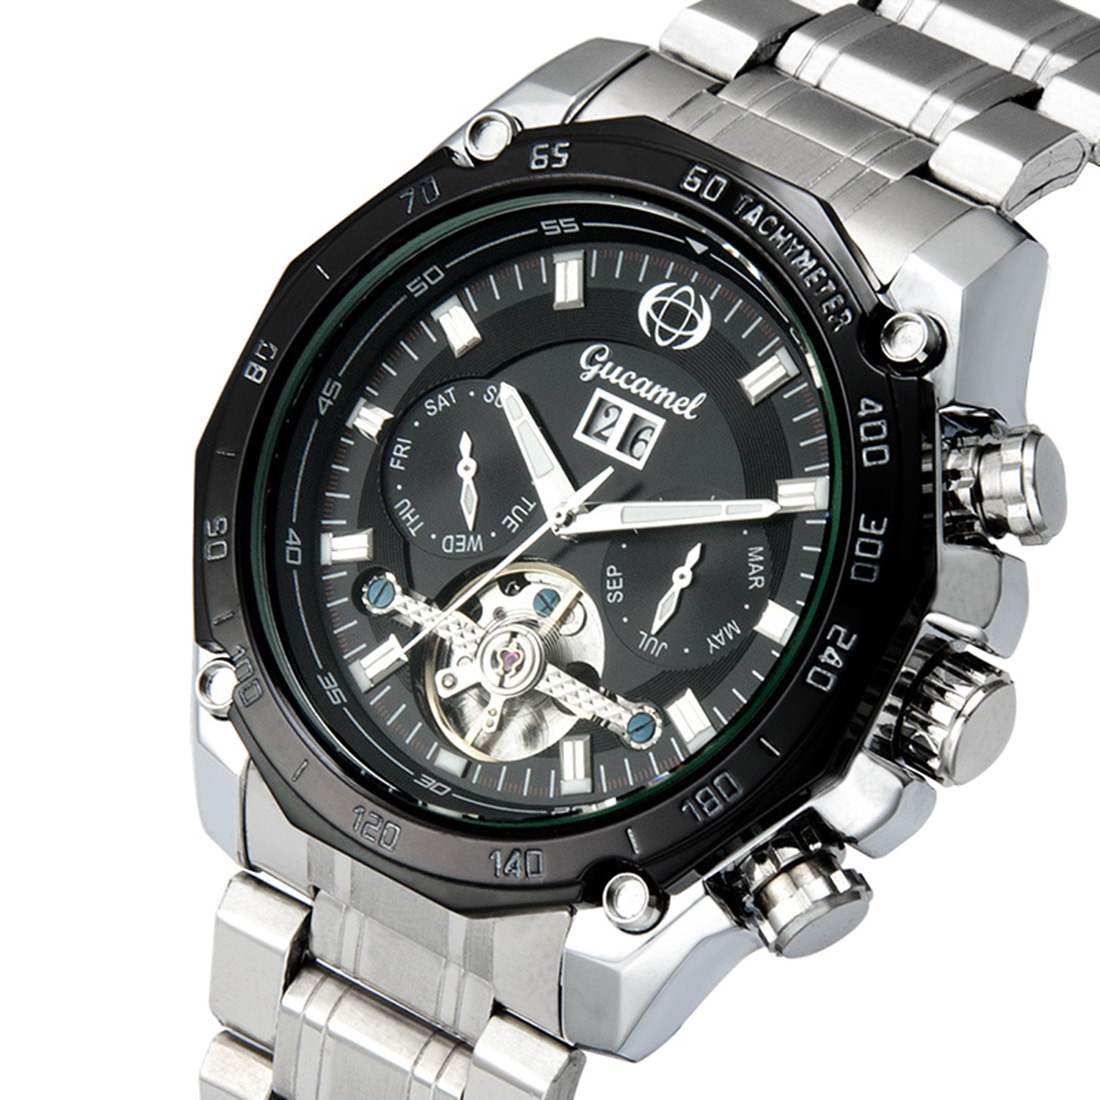 Top Luxury Brand Men Watch Waterproof  Casual Man Watches Stainless Steel  Watch Relogio Masculino weide popular brand new fashion digital led watch men waterproof sport watches man white dial stainless steel relogio masculino